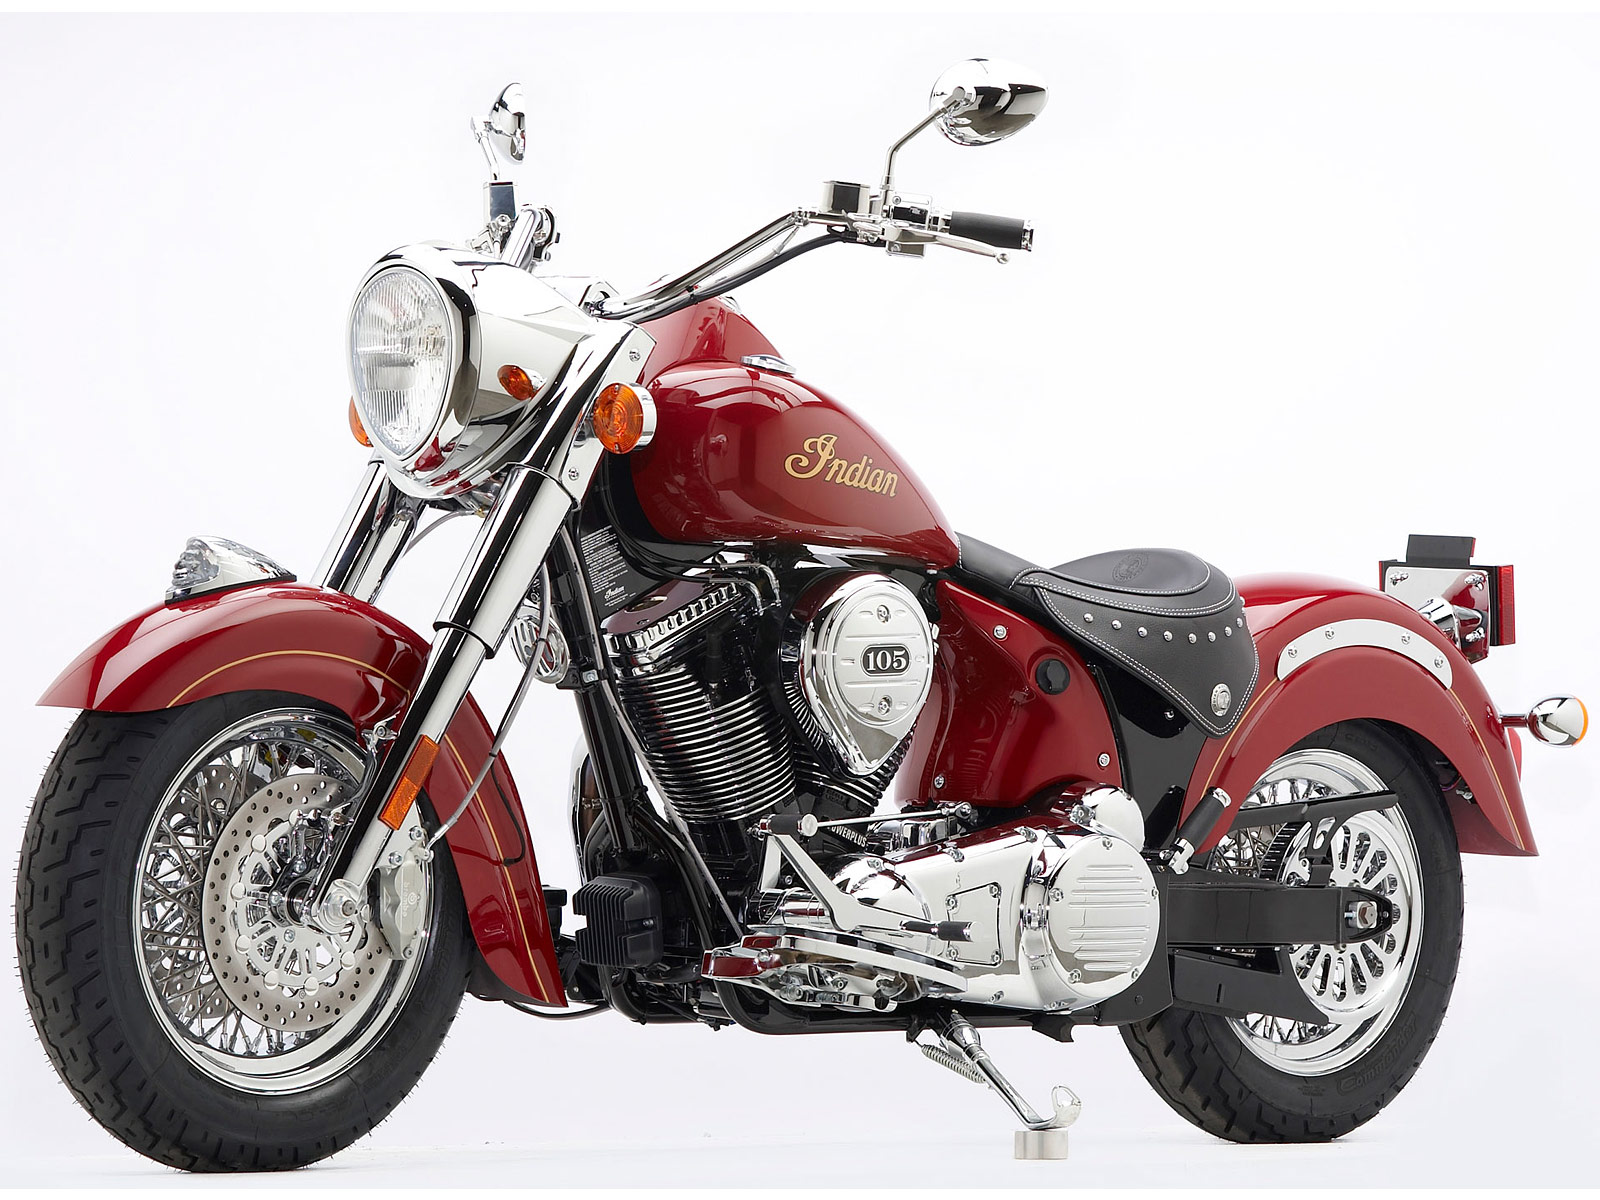 Indian Chief Motorcycle: 2012 INDIAN Chief Classic Motorcycle Desktop Wallpaper